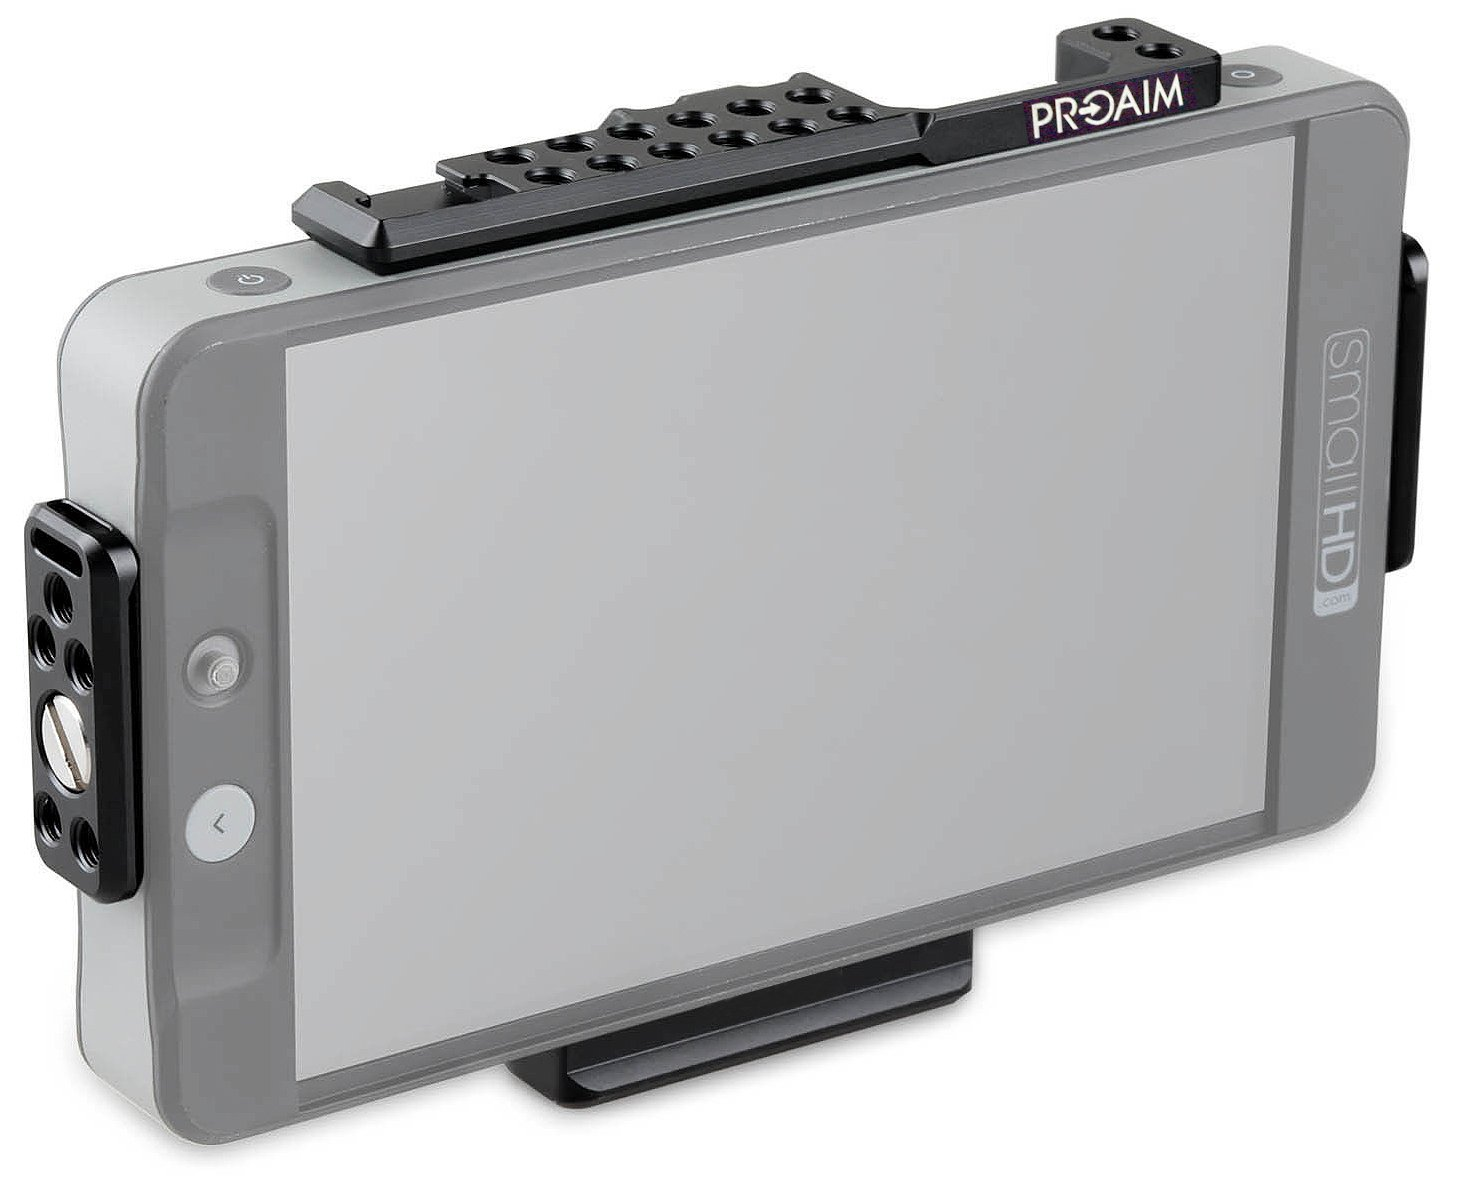 Proaim HDMI Director's Monitor Cage for V-Mount Battery Plate SmallHD 701 LITE, 702 LITE and 702 BRIGHT